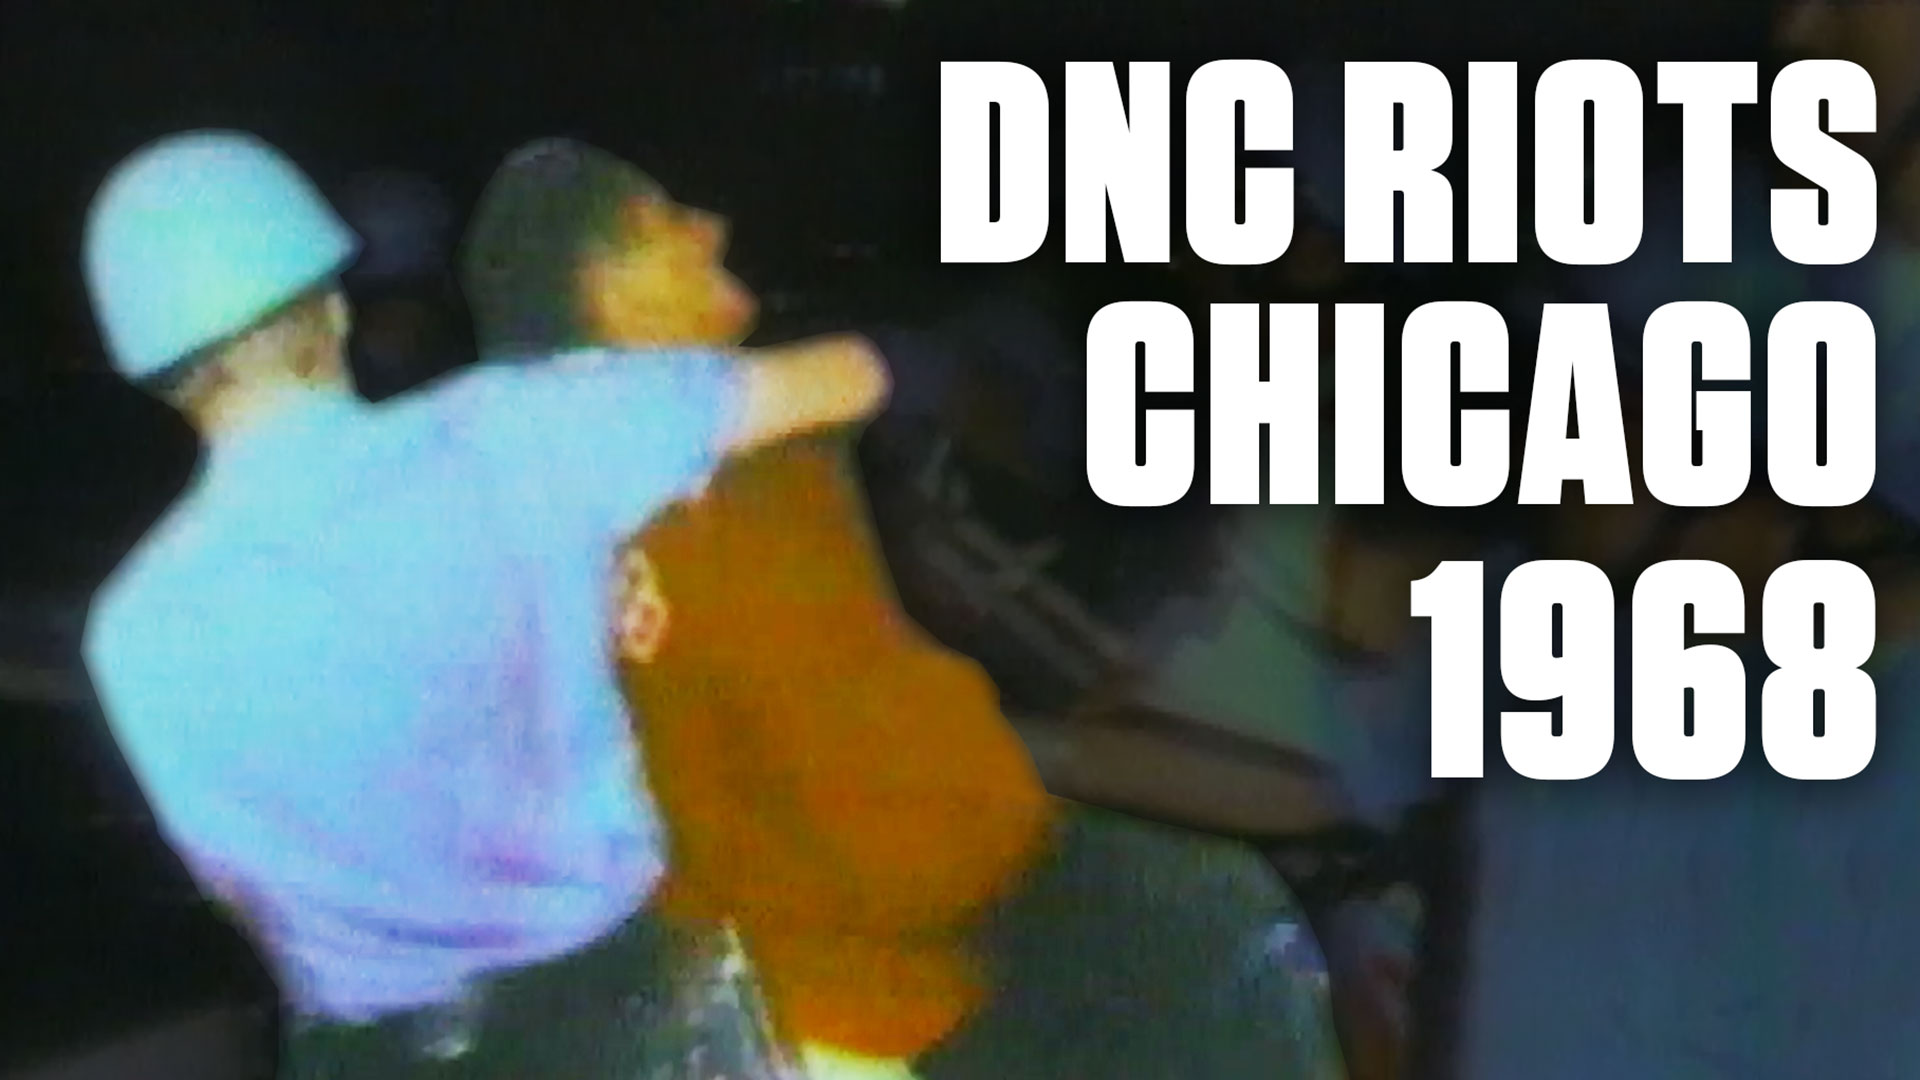 democratic national convention in chicago 1968 history essay Revisiting 1968's democratic national convention in chicago the convention was marred by violent protests and clashes with police that helped to define the unrest that marked the year the meeting.